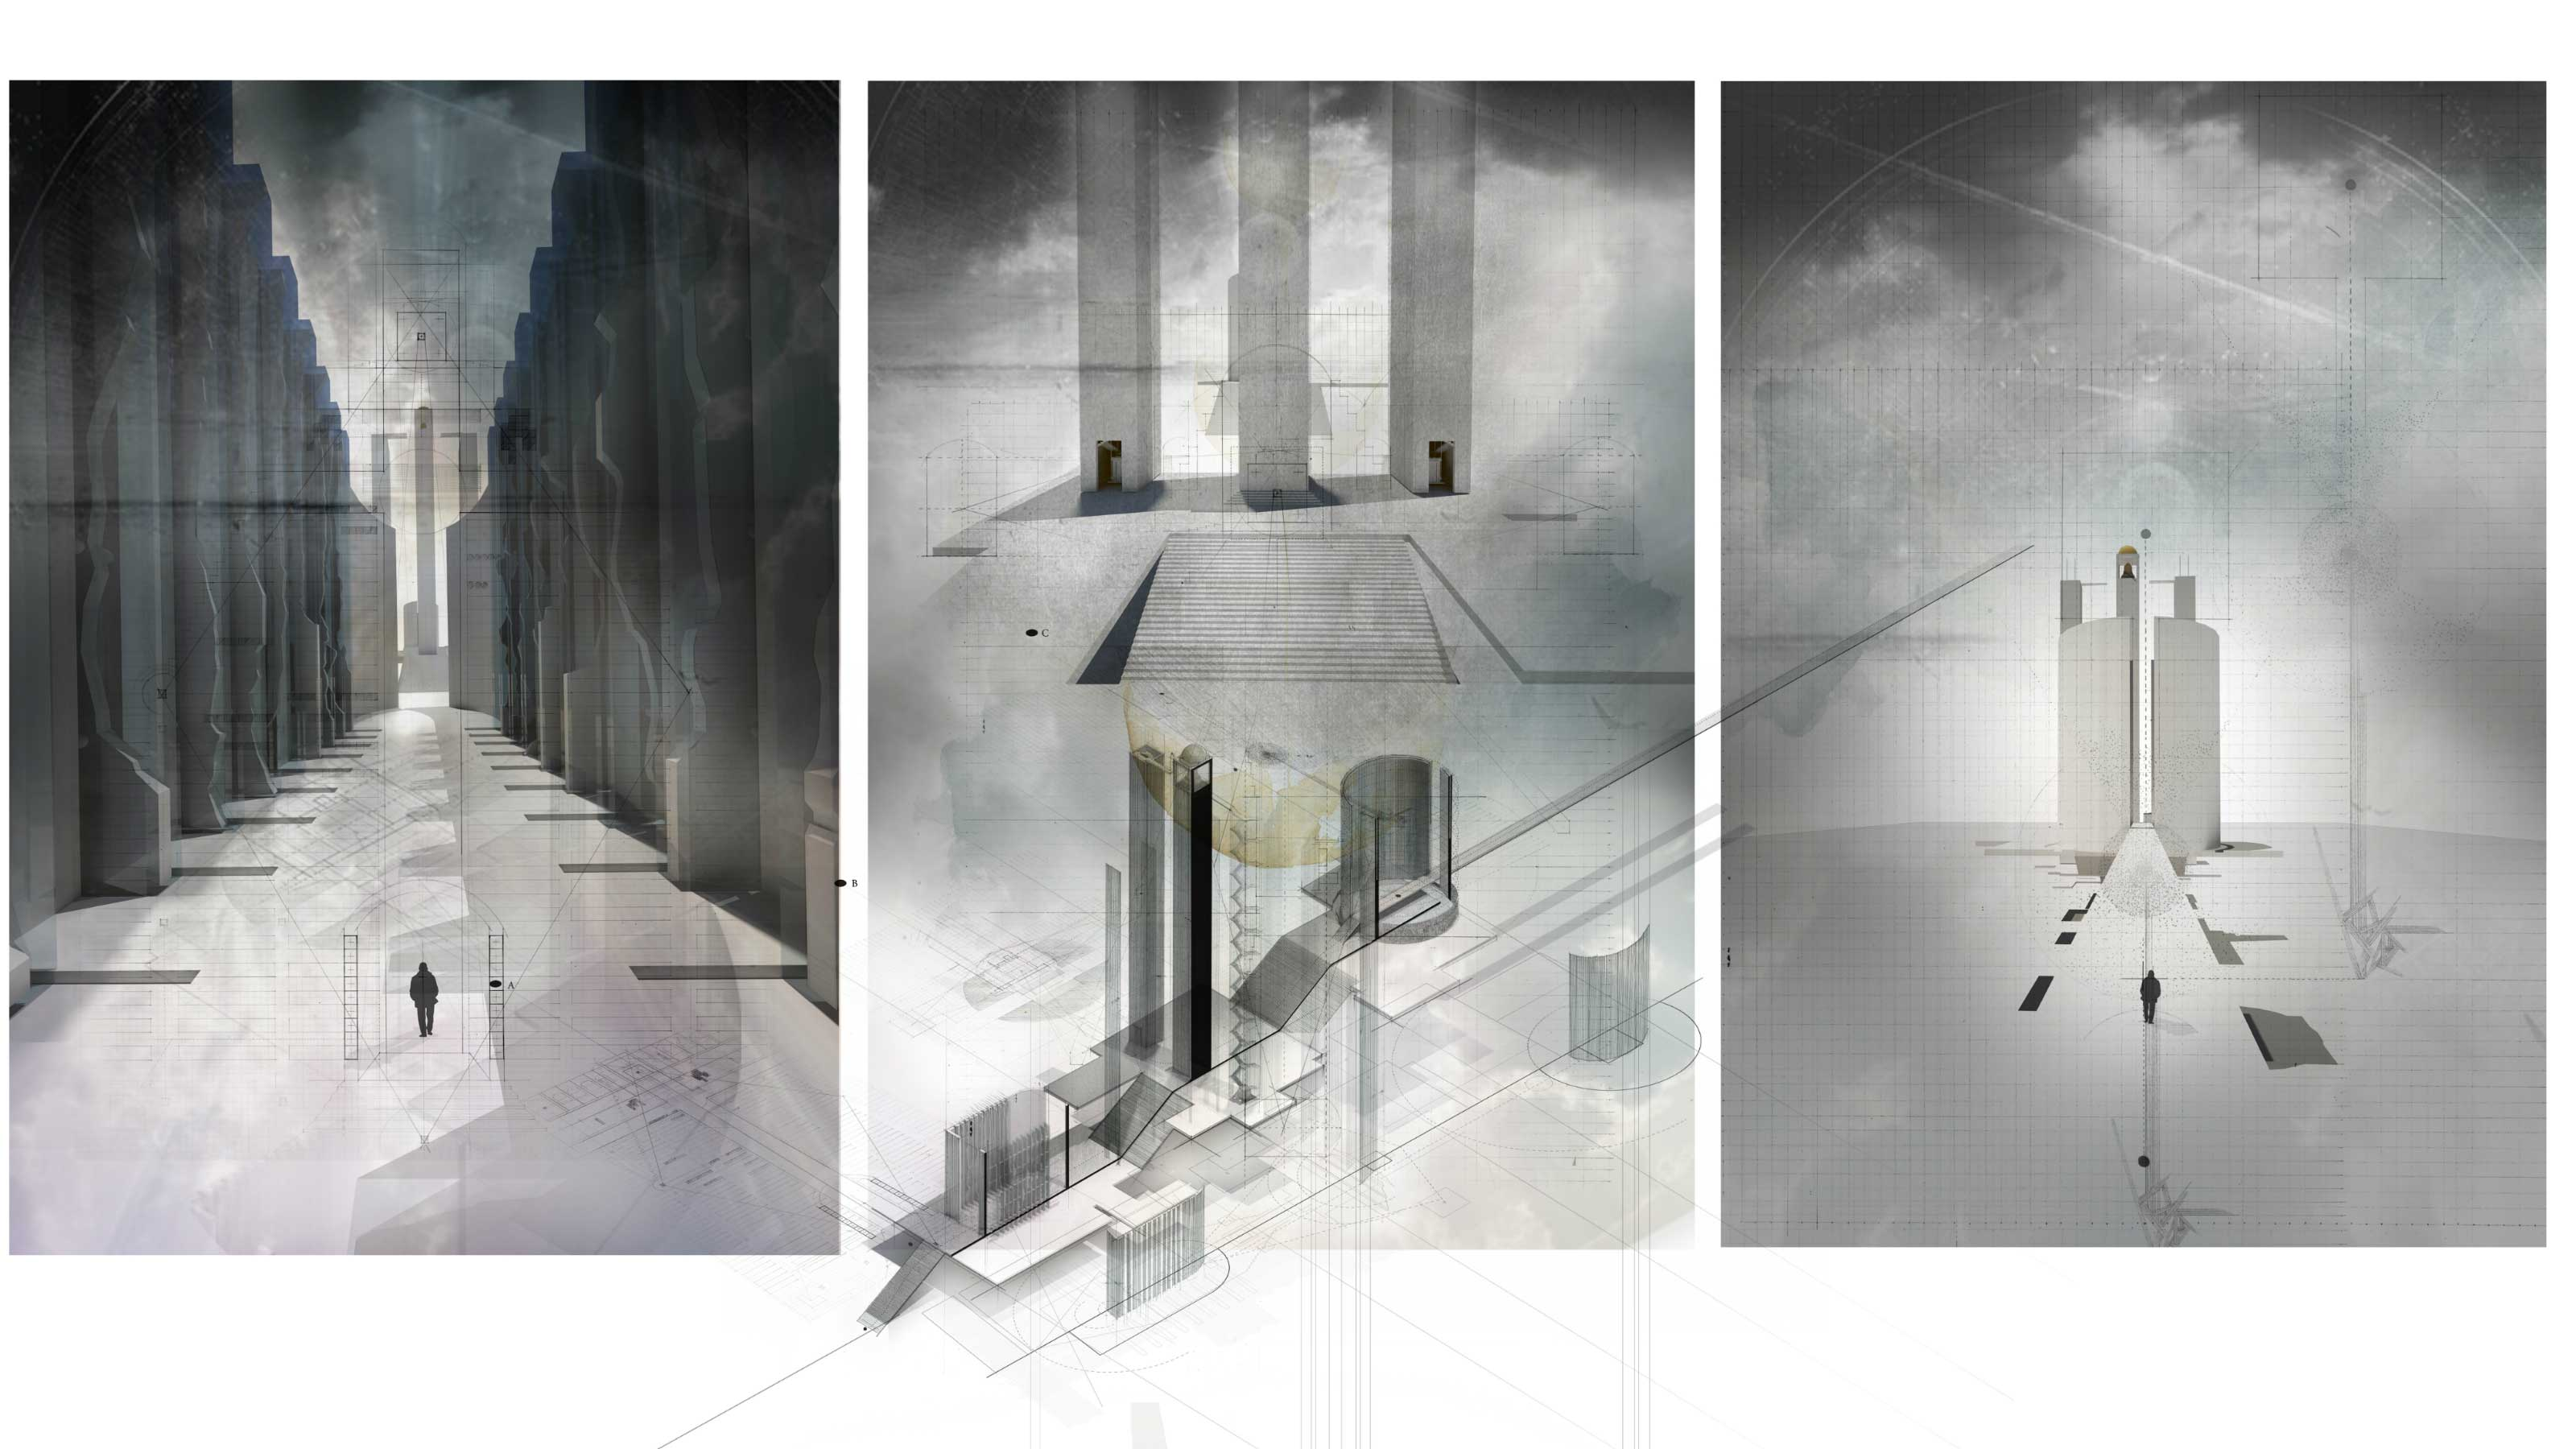 Coptic Ruins Reincarnated A Prizewinning Work In IDEA Competition For INTA 591 Thesis